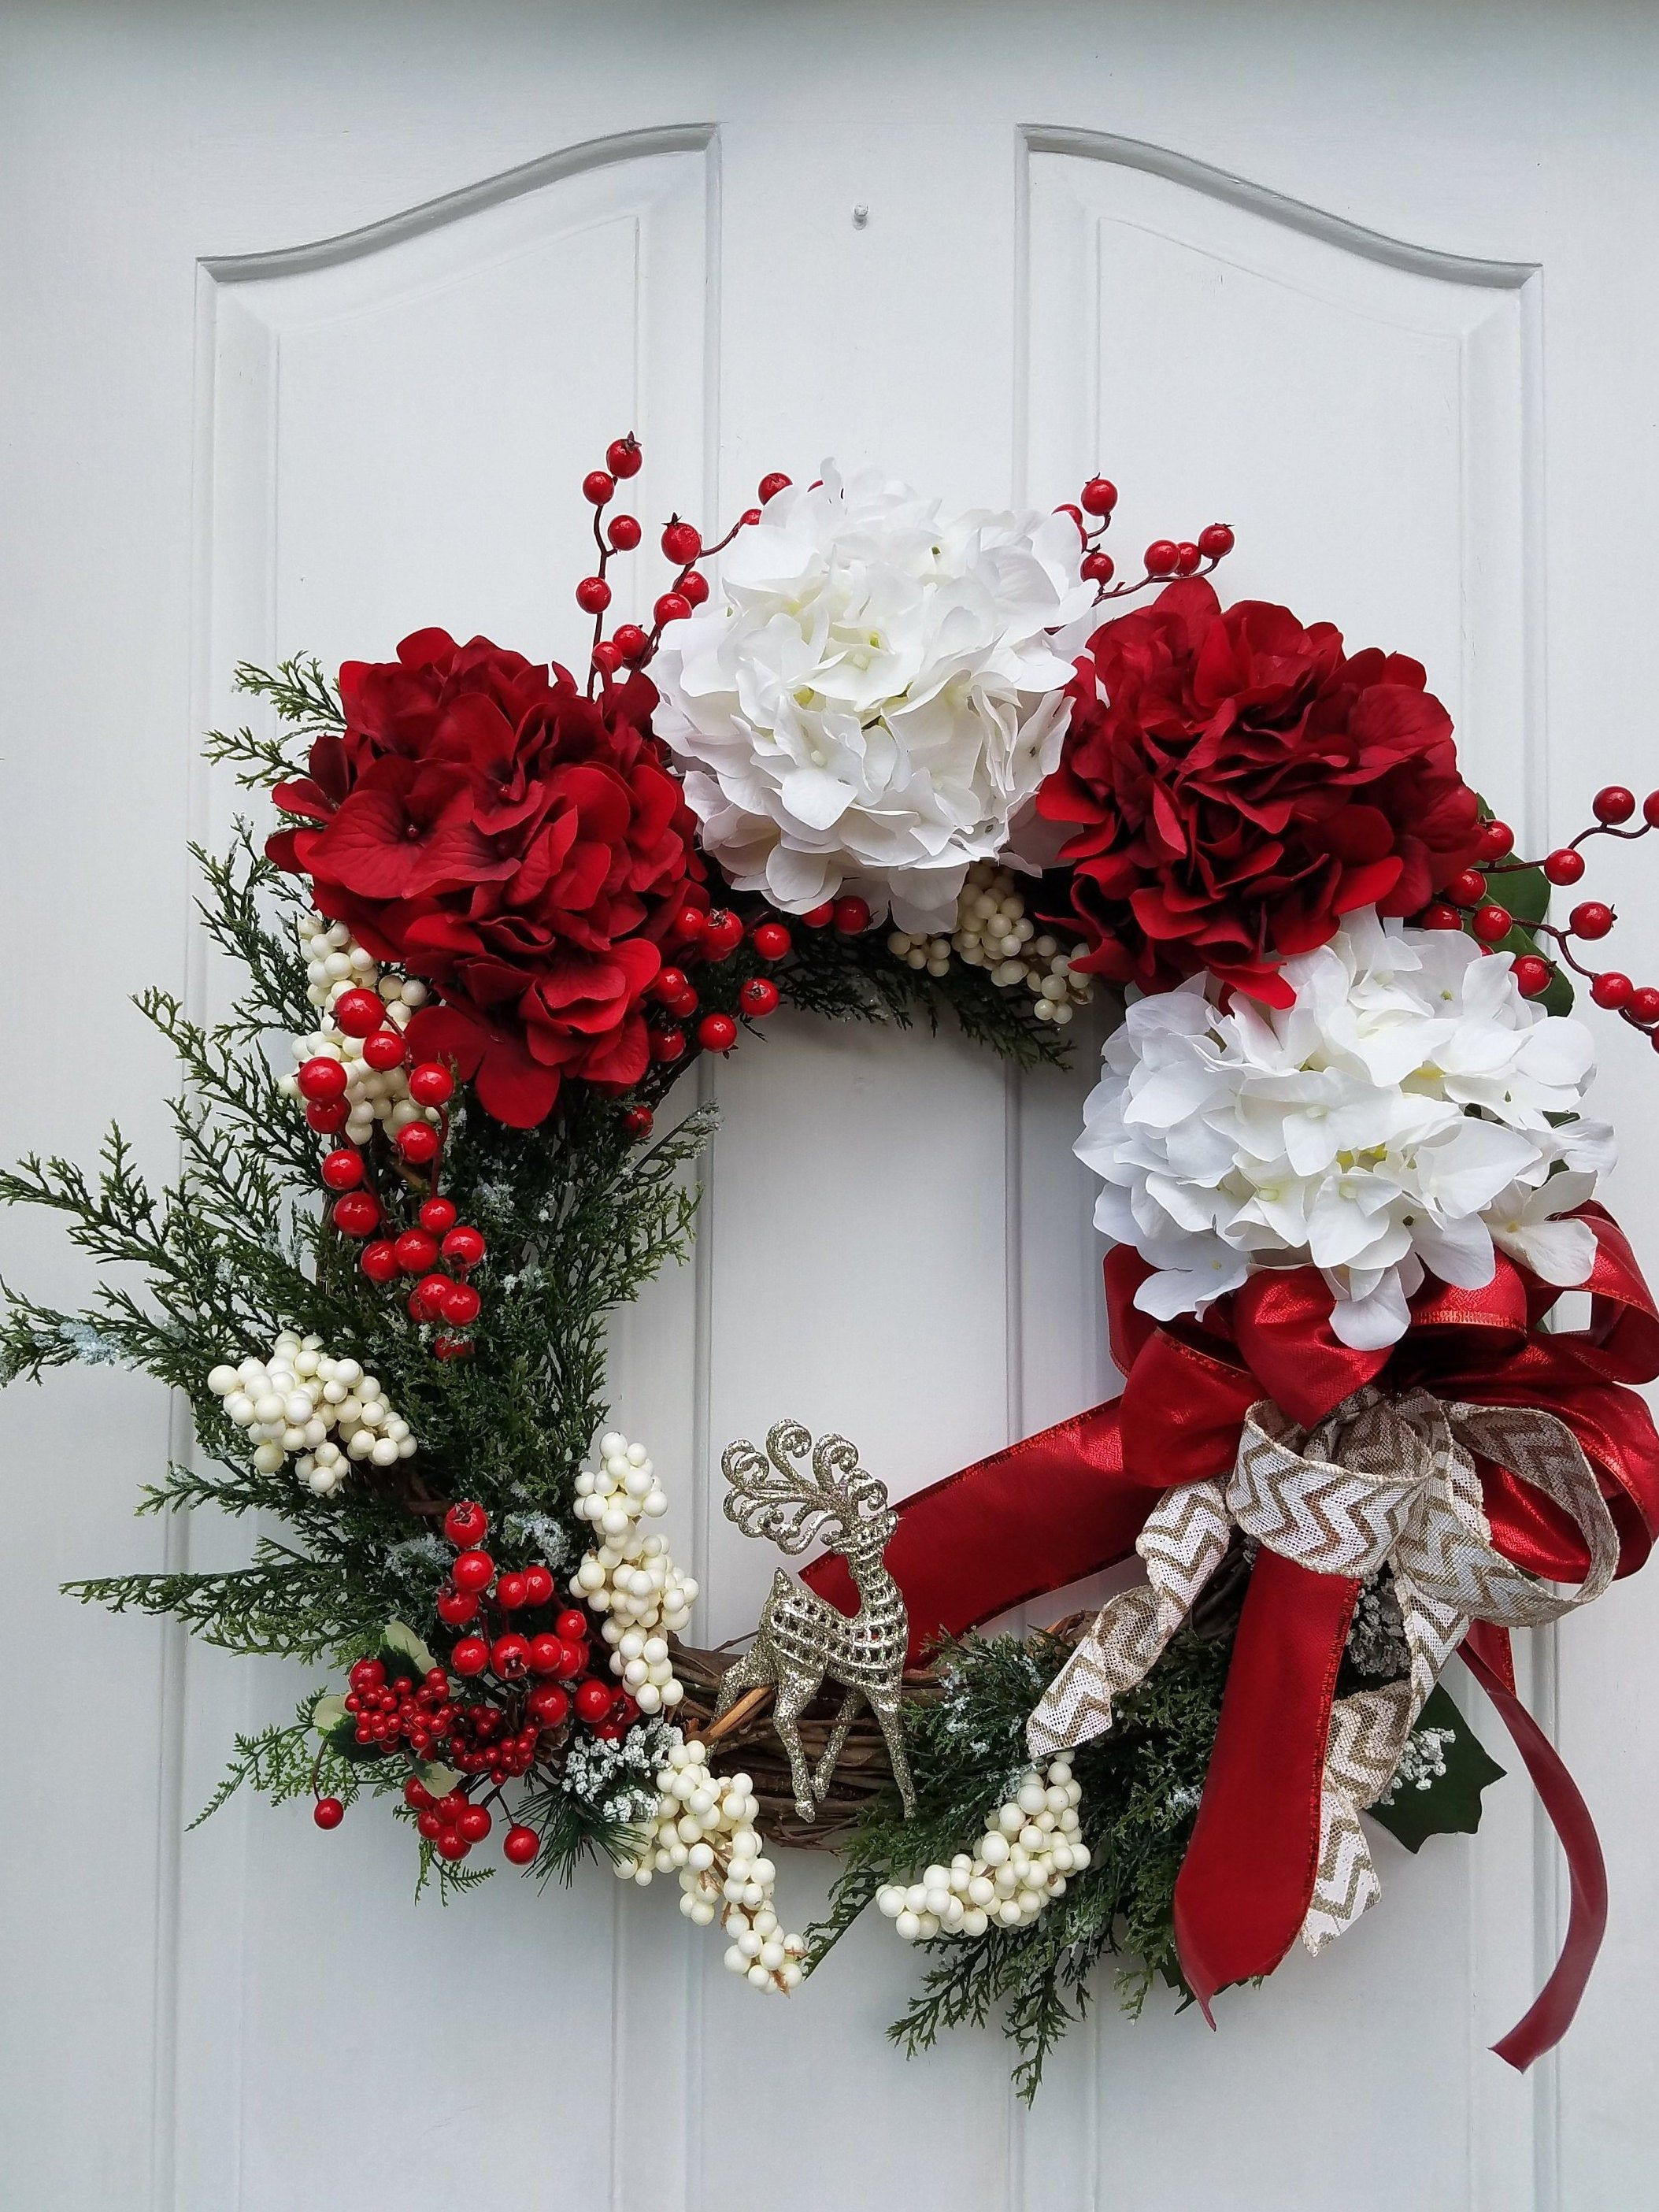 Winter Wreath for Front Door, All Season Wreath, Family